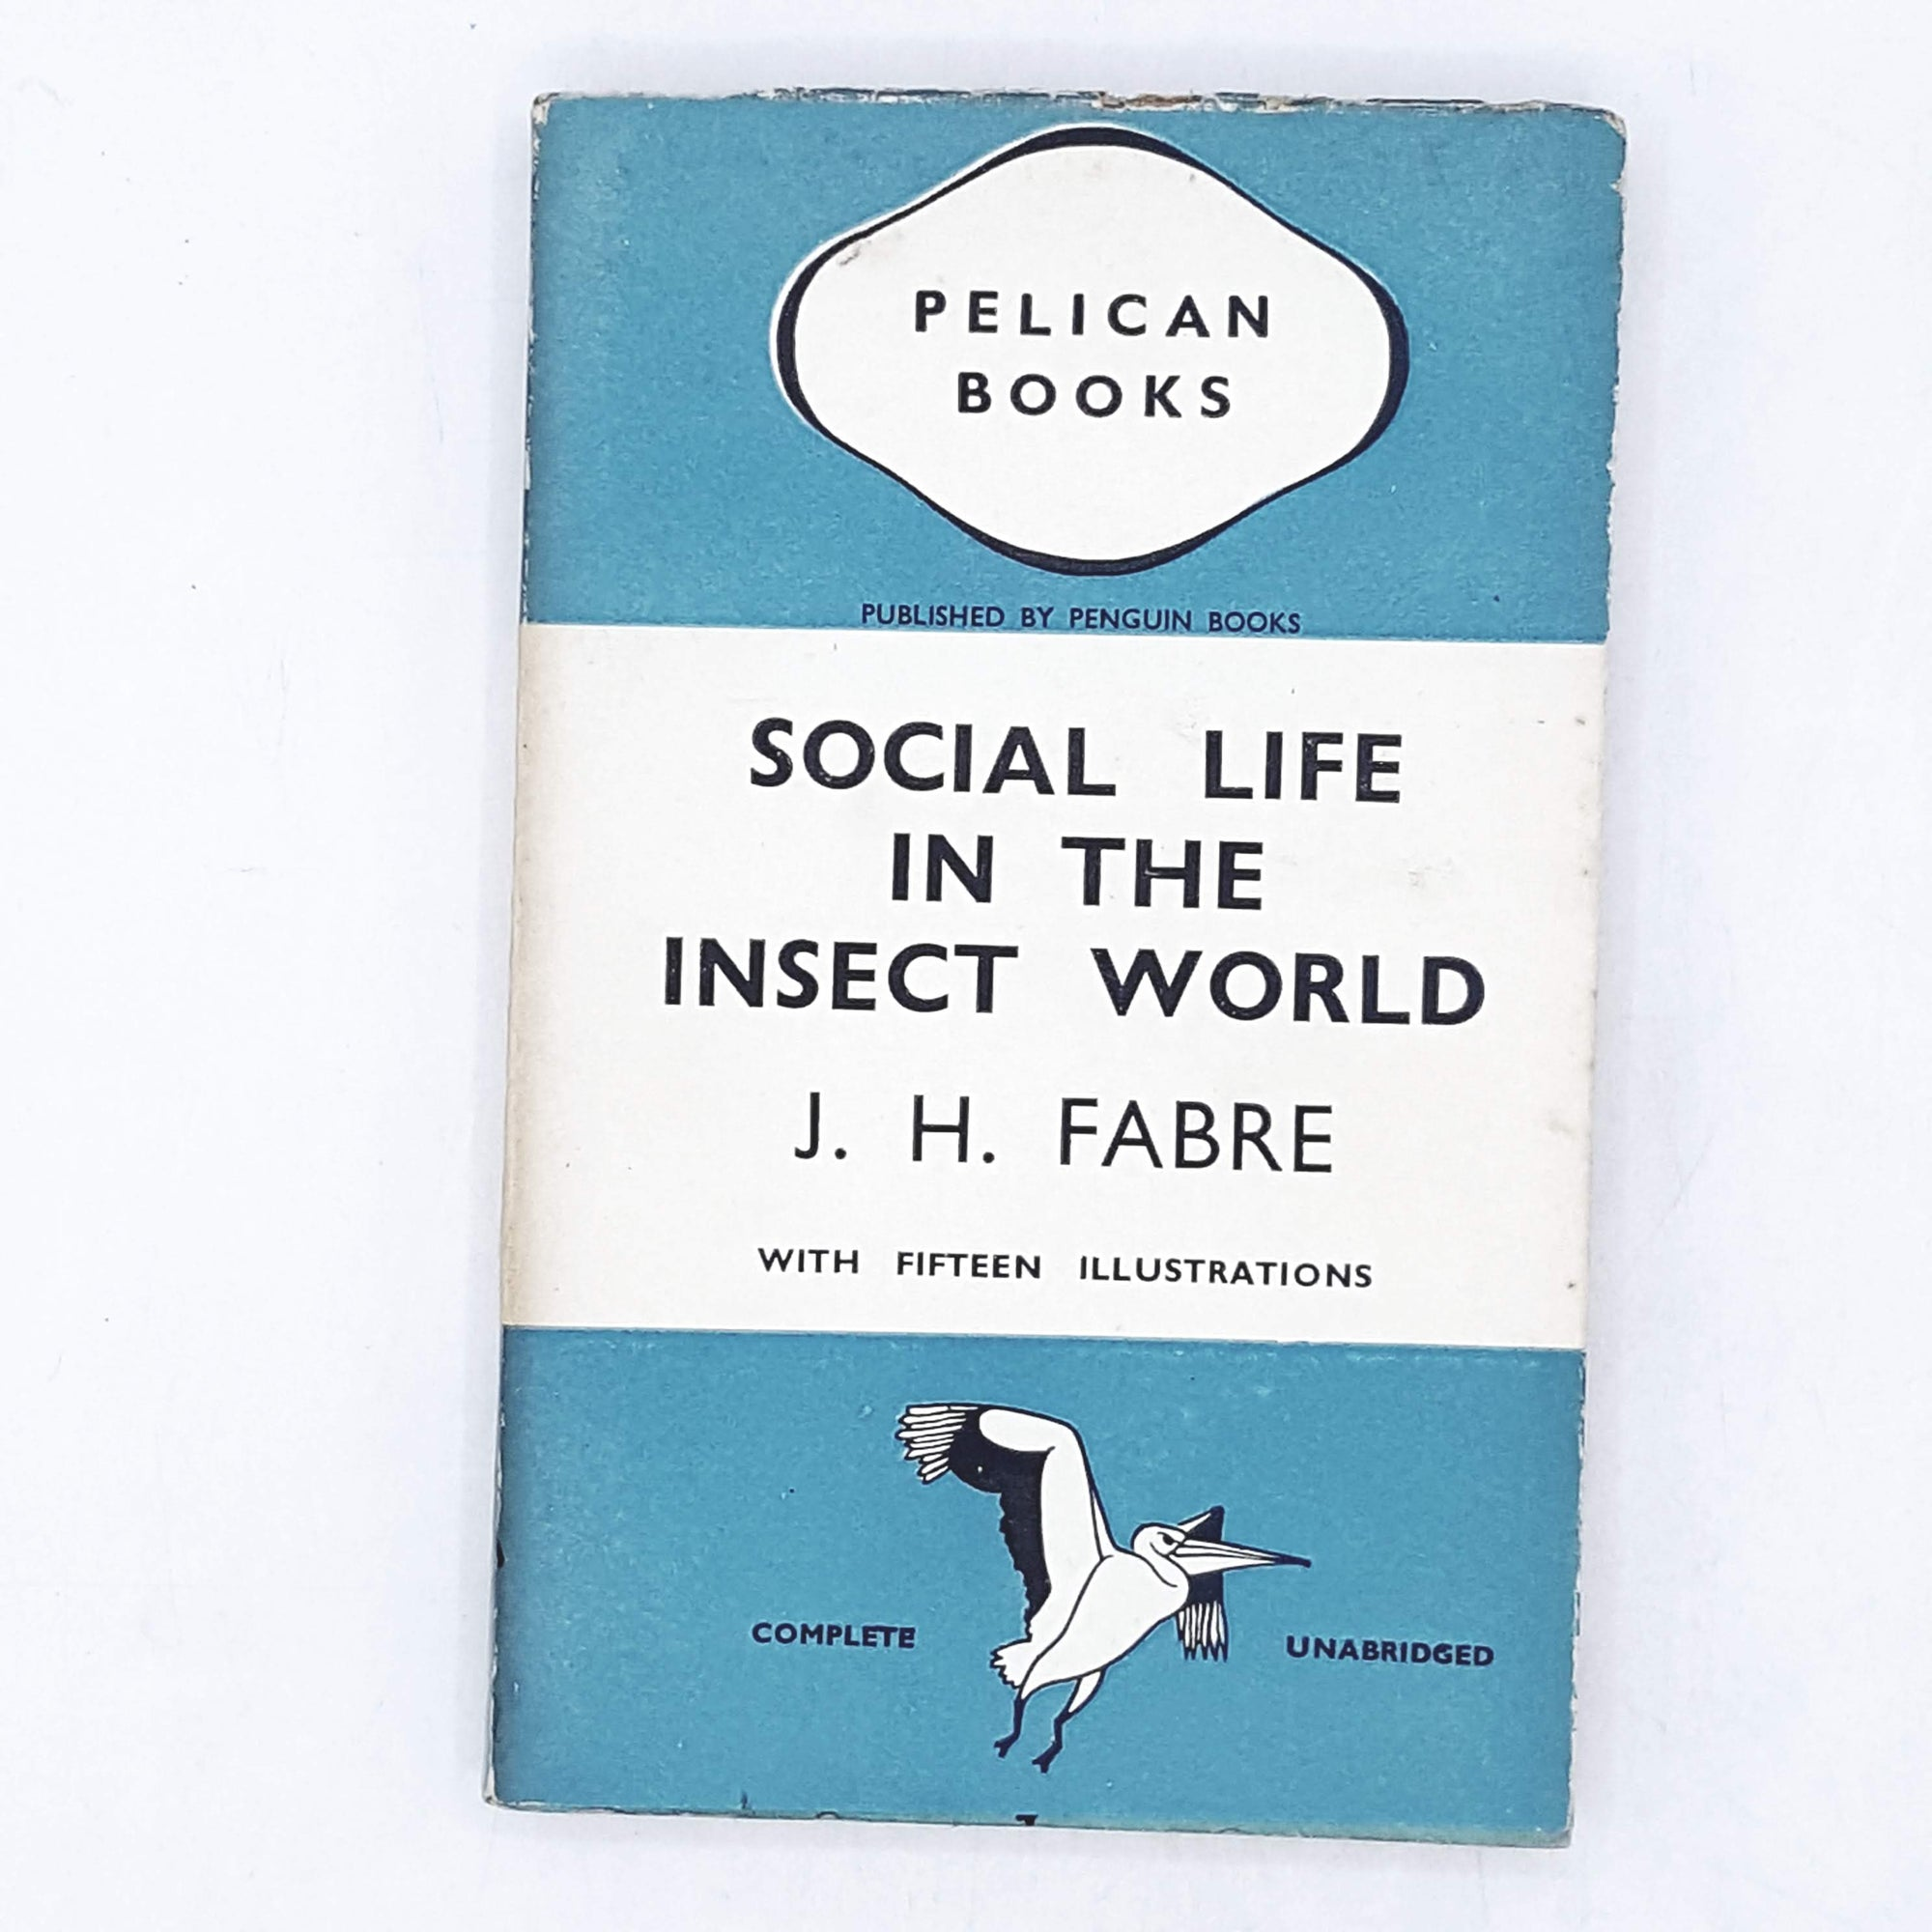 Social Life in the Insect World by J. H. Fabre 1938